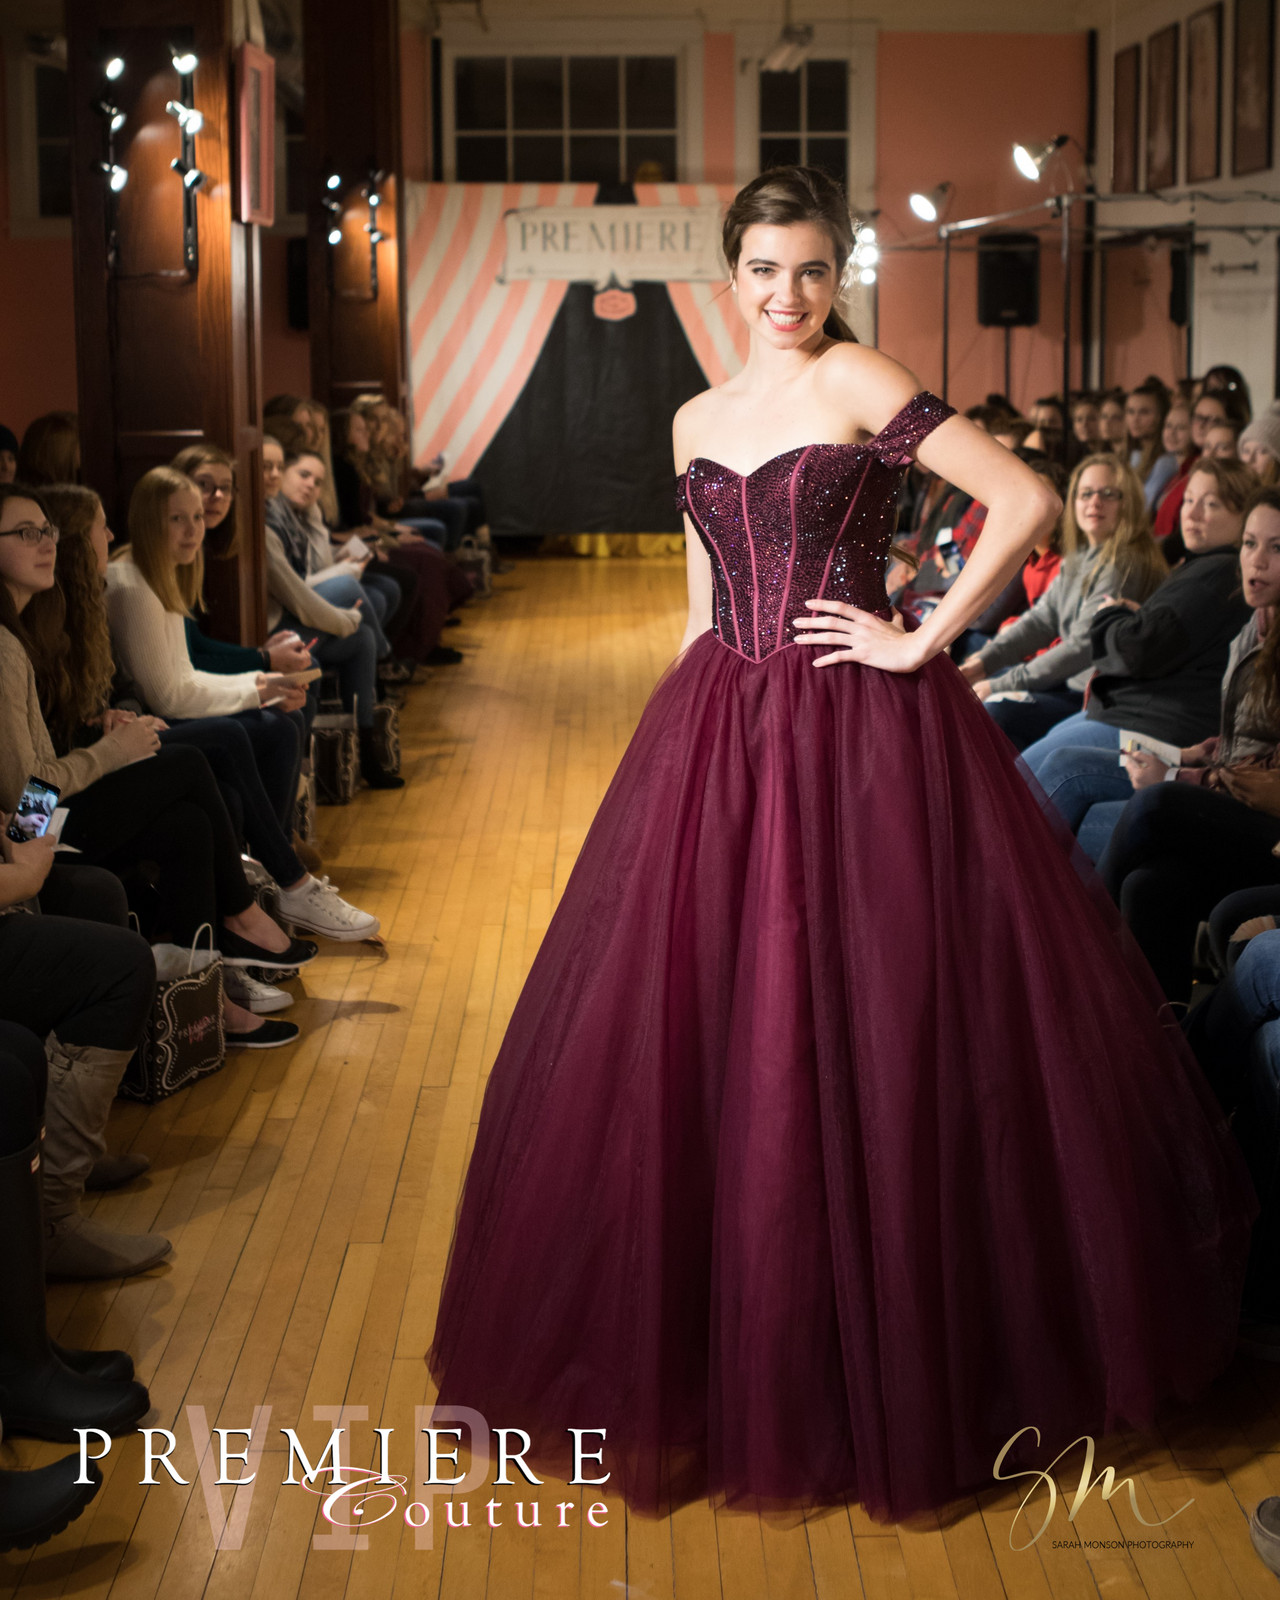 215831350f Ella models a luscious a black plum ball gown with an off the shoulder  corset bodice covered completely in crystals. Make up by Tobi Bolt